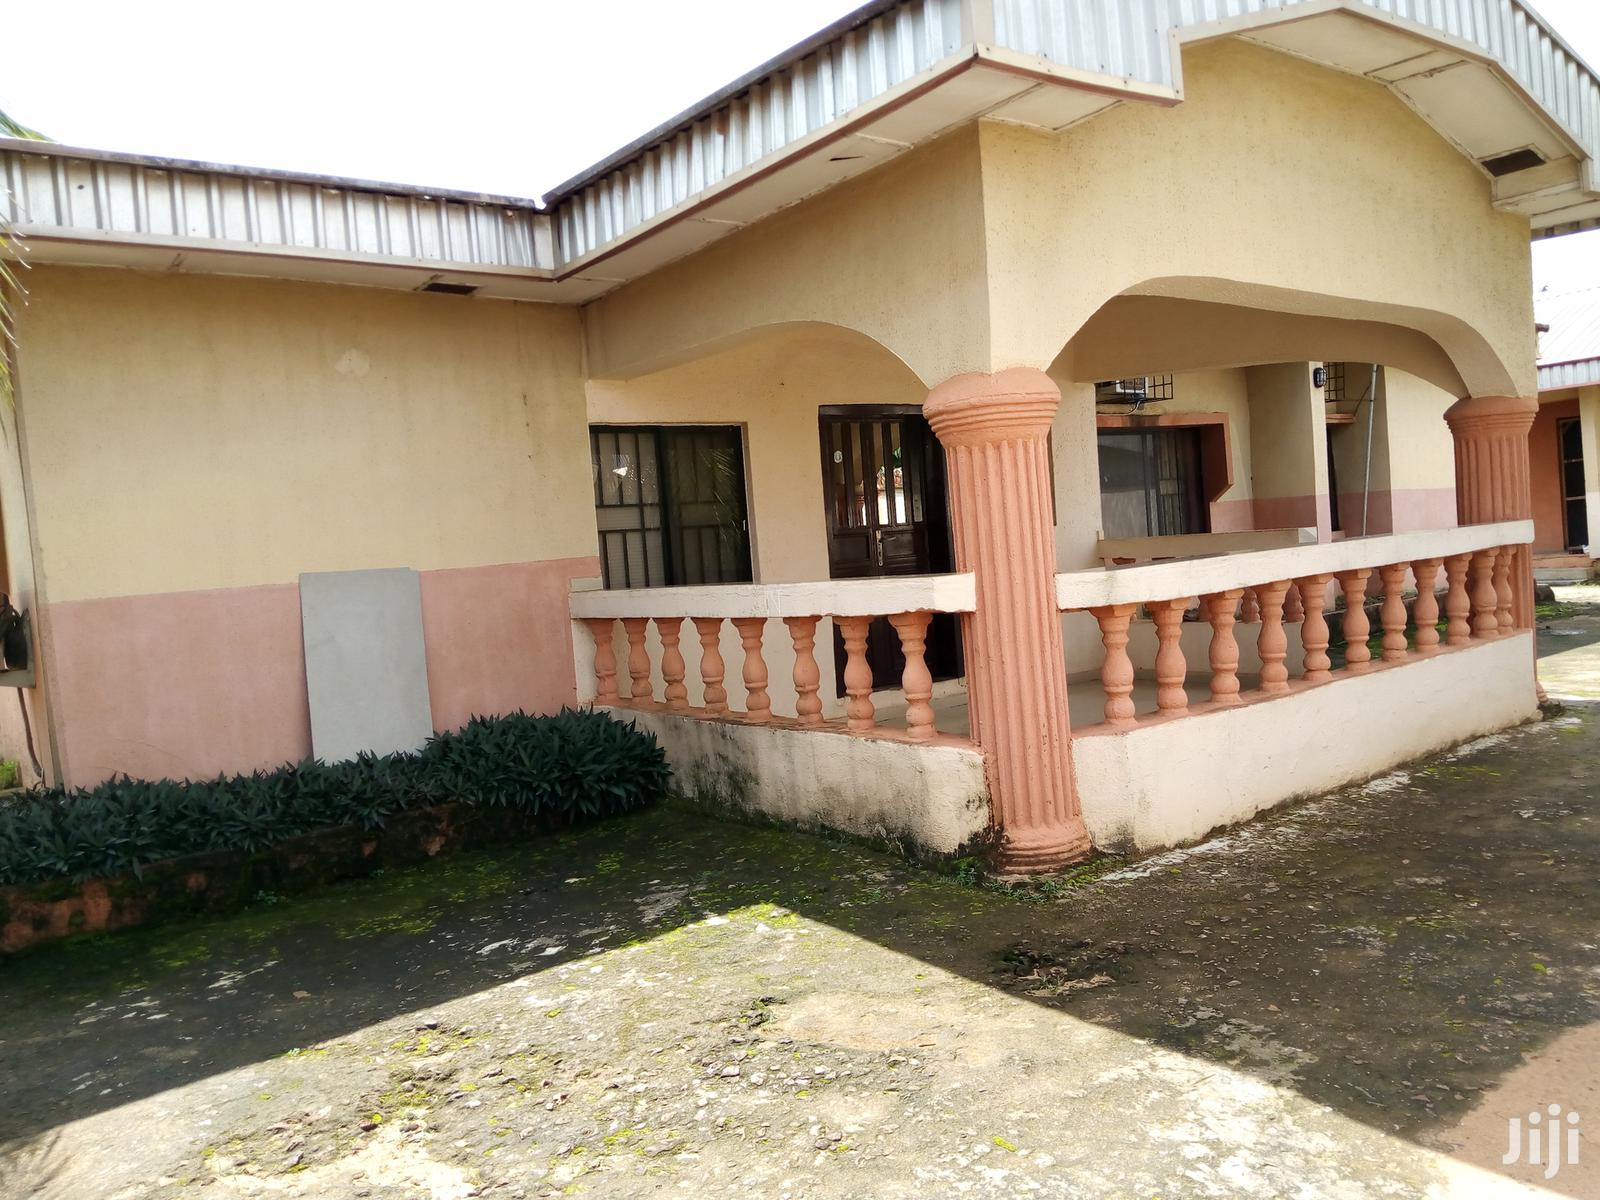 5 Rooms Bungalow With 2bedrm Boys Quarter | Houses & Apartments For Sale for sale in Awka, Anambra State, Nigeria